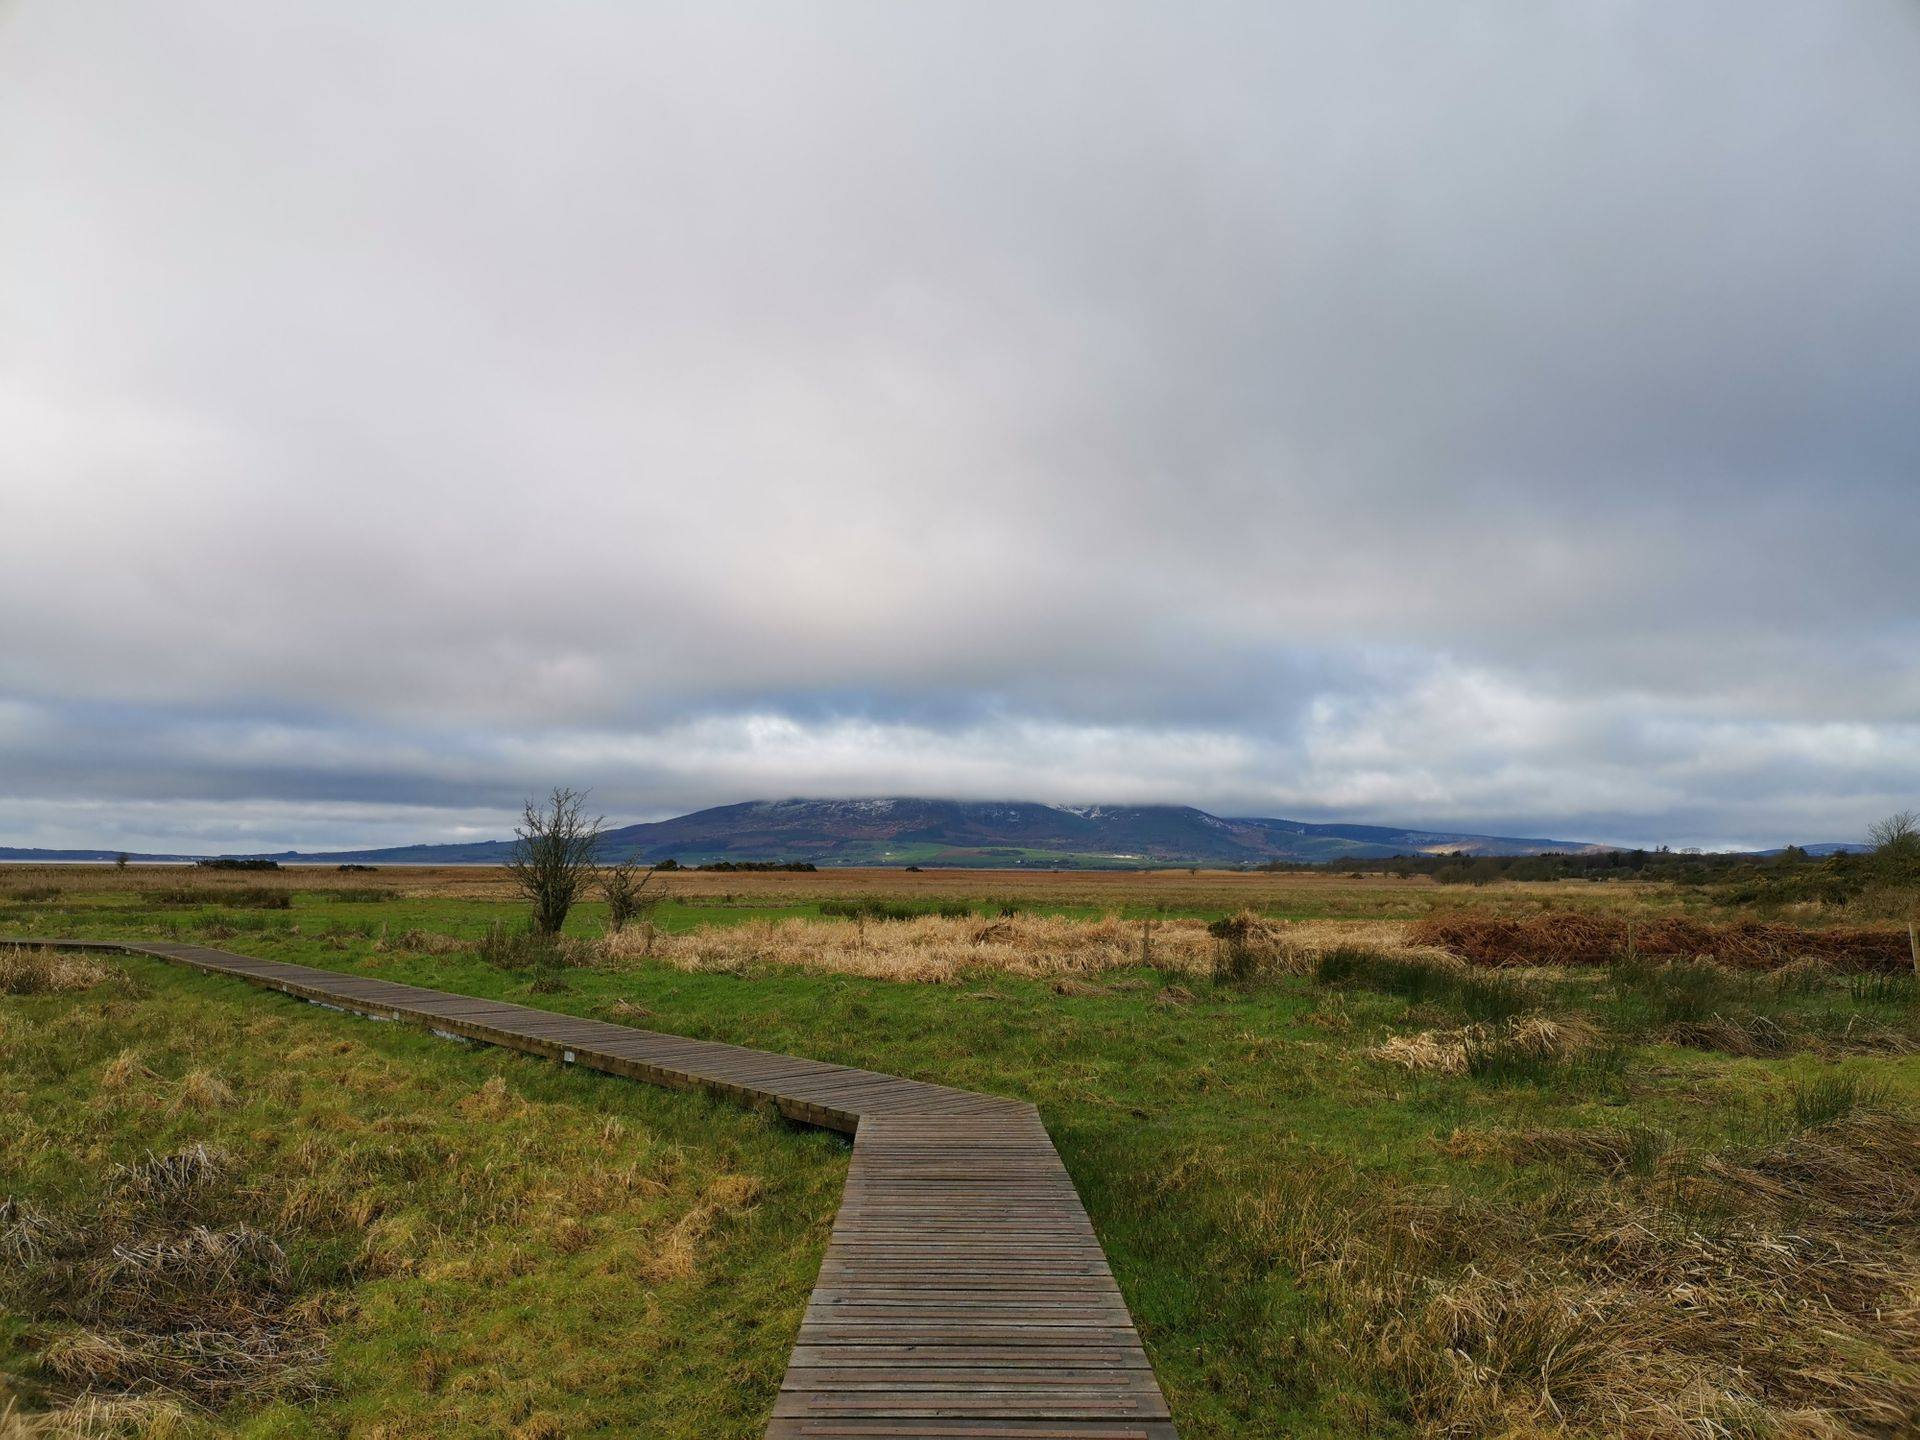 Pictures sent by Dr Jane Rowley, Project Manager at Trent Dementia, from her favourite walk in Scotland